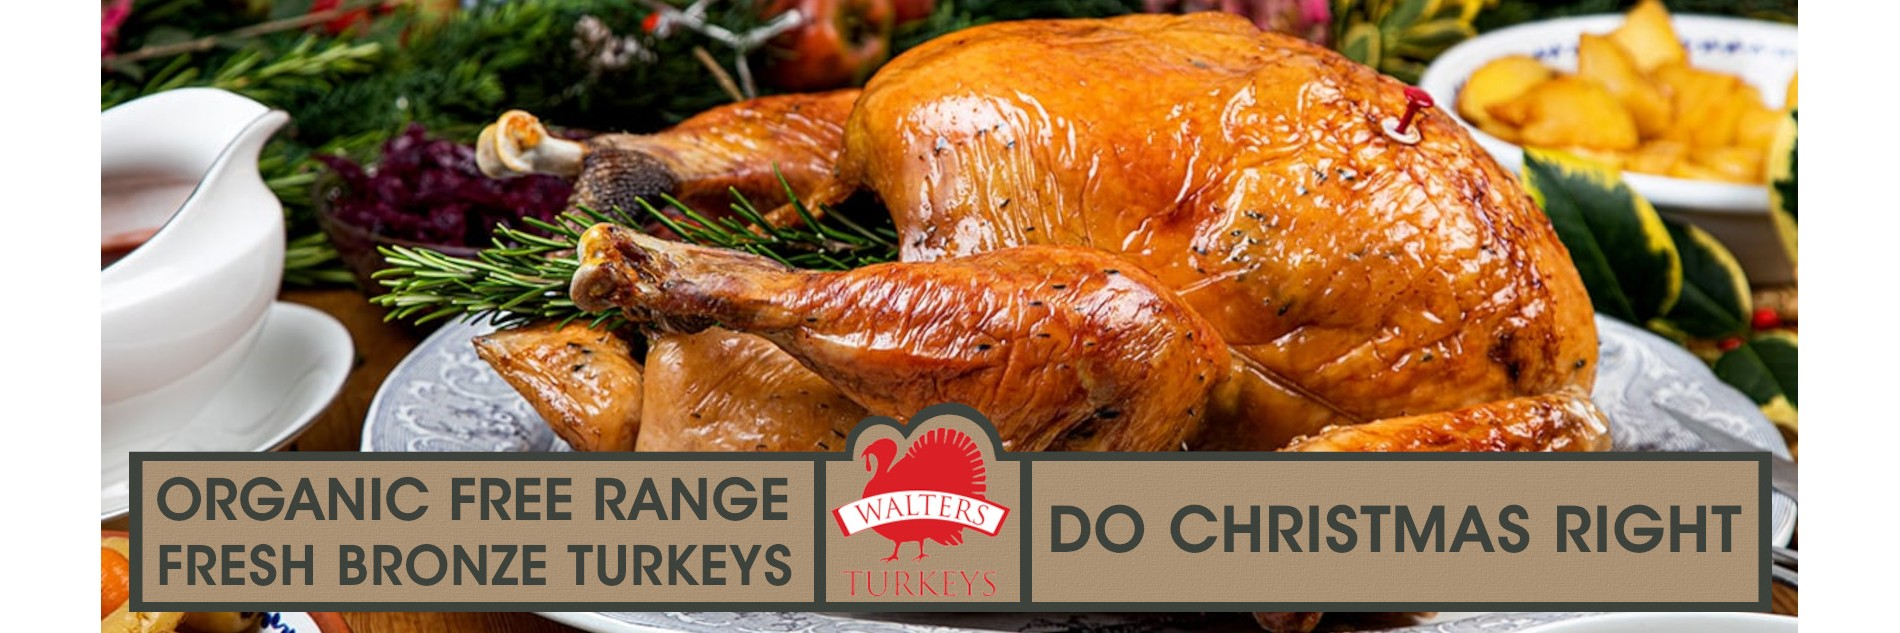 Organic Free Range Christmas Turkeys from Walters Turkeys